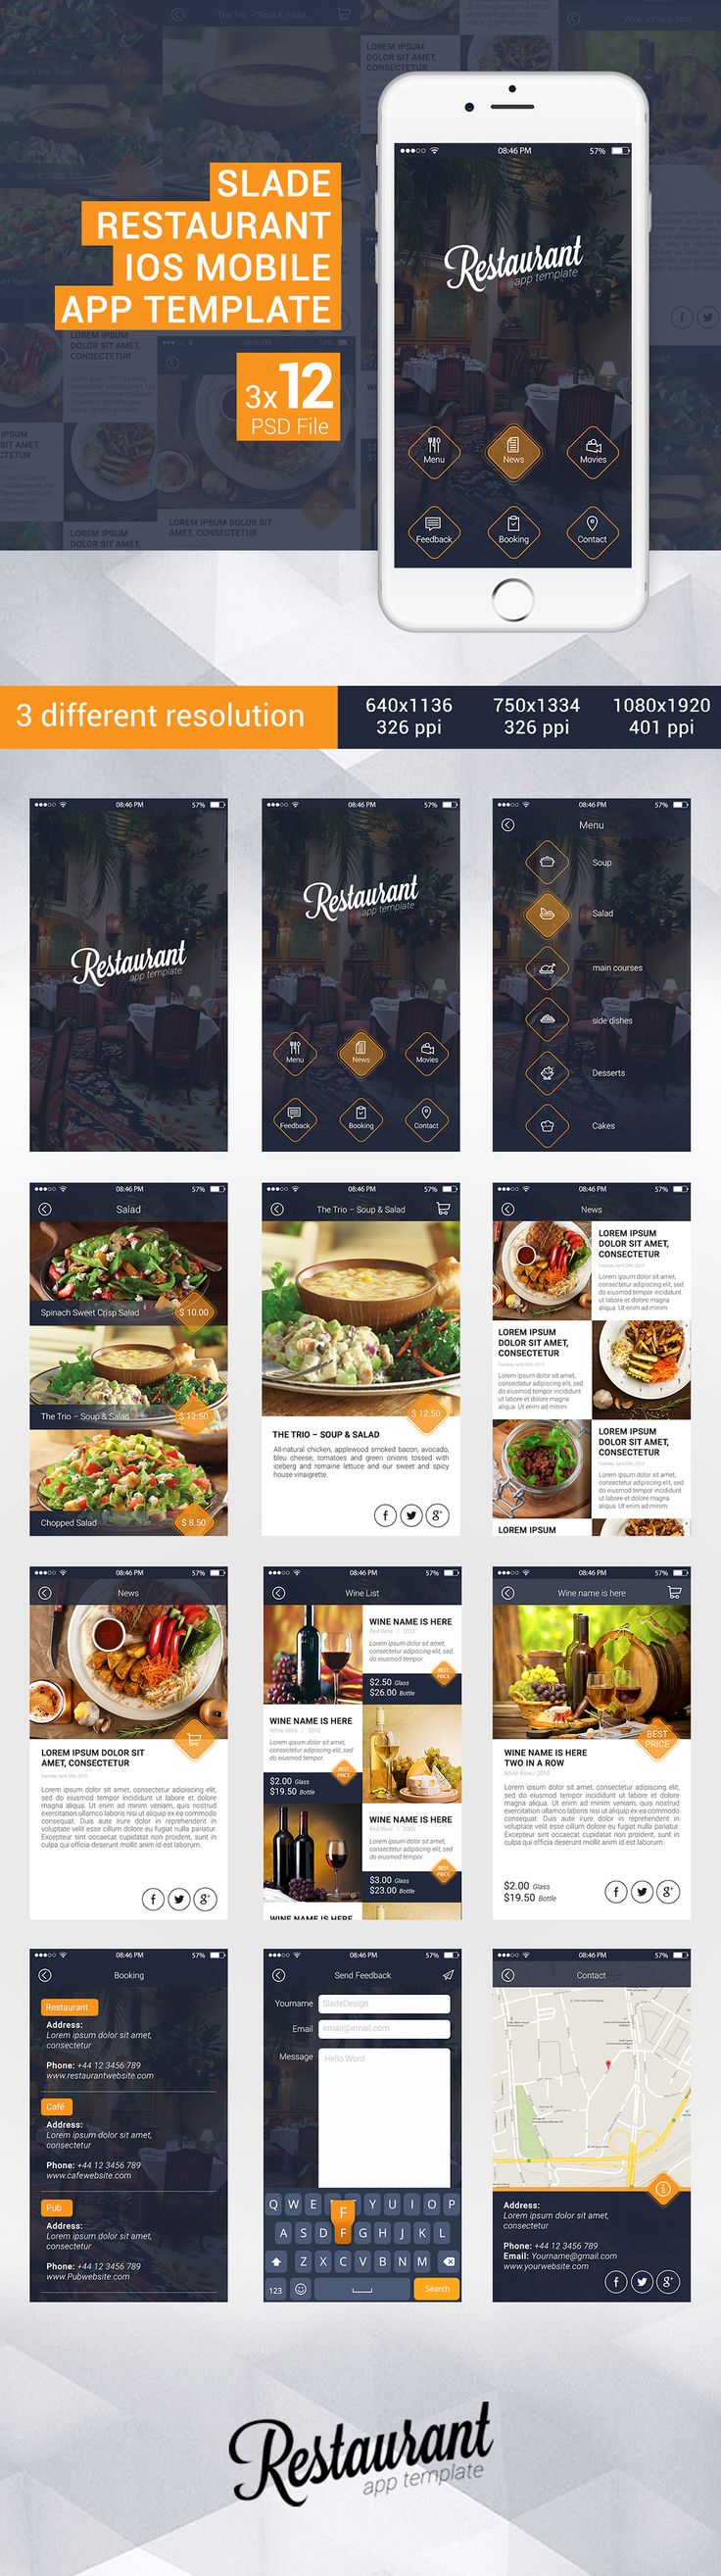 Slade Restaurant iOS Mobile App Template on Behance